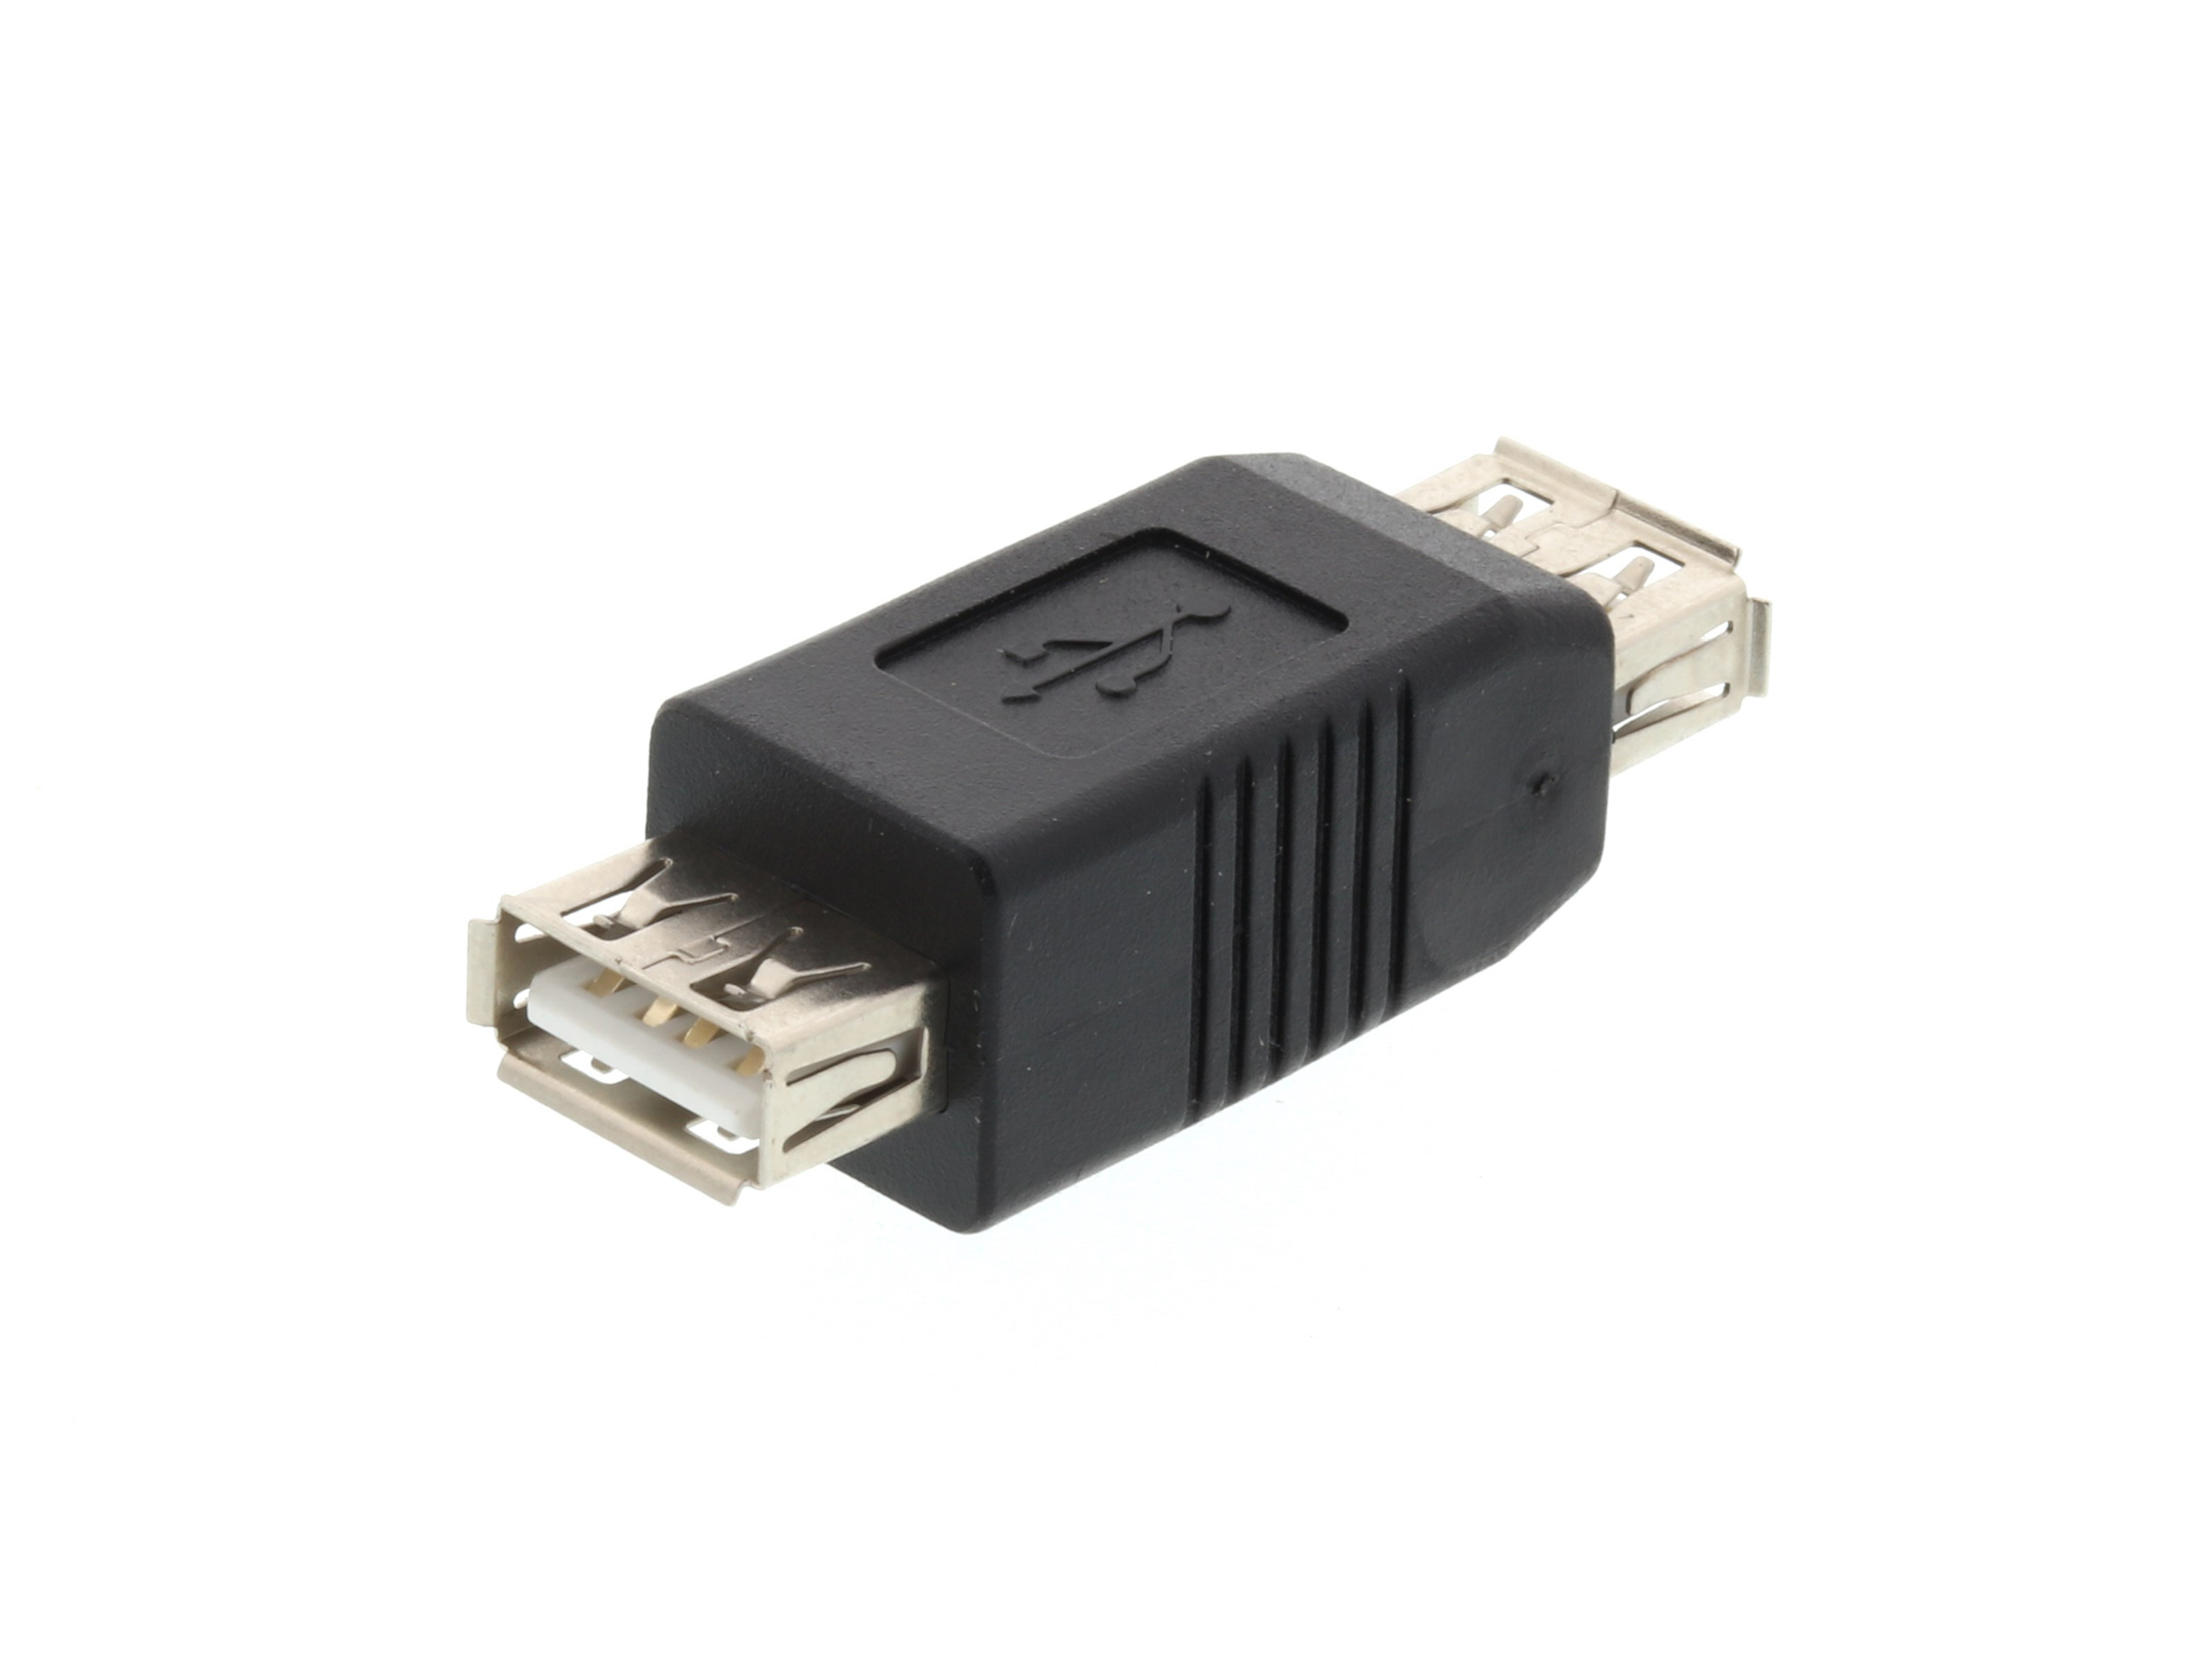 Usb 2.0 Adapter - Usb A Female To Female | Computer Cable Store - Usb Female To Female Adapter Wiring Diagram